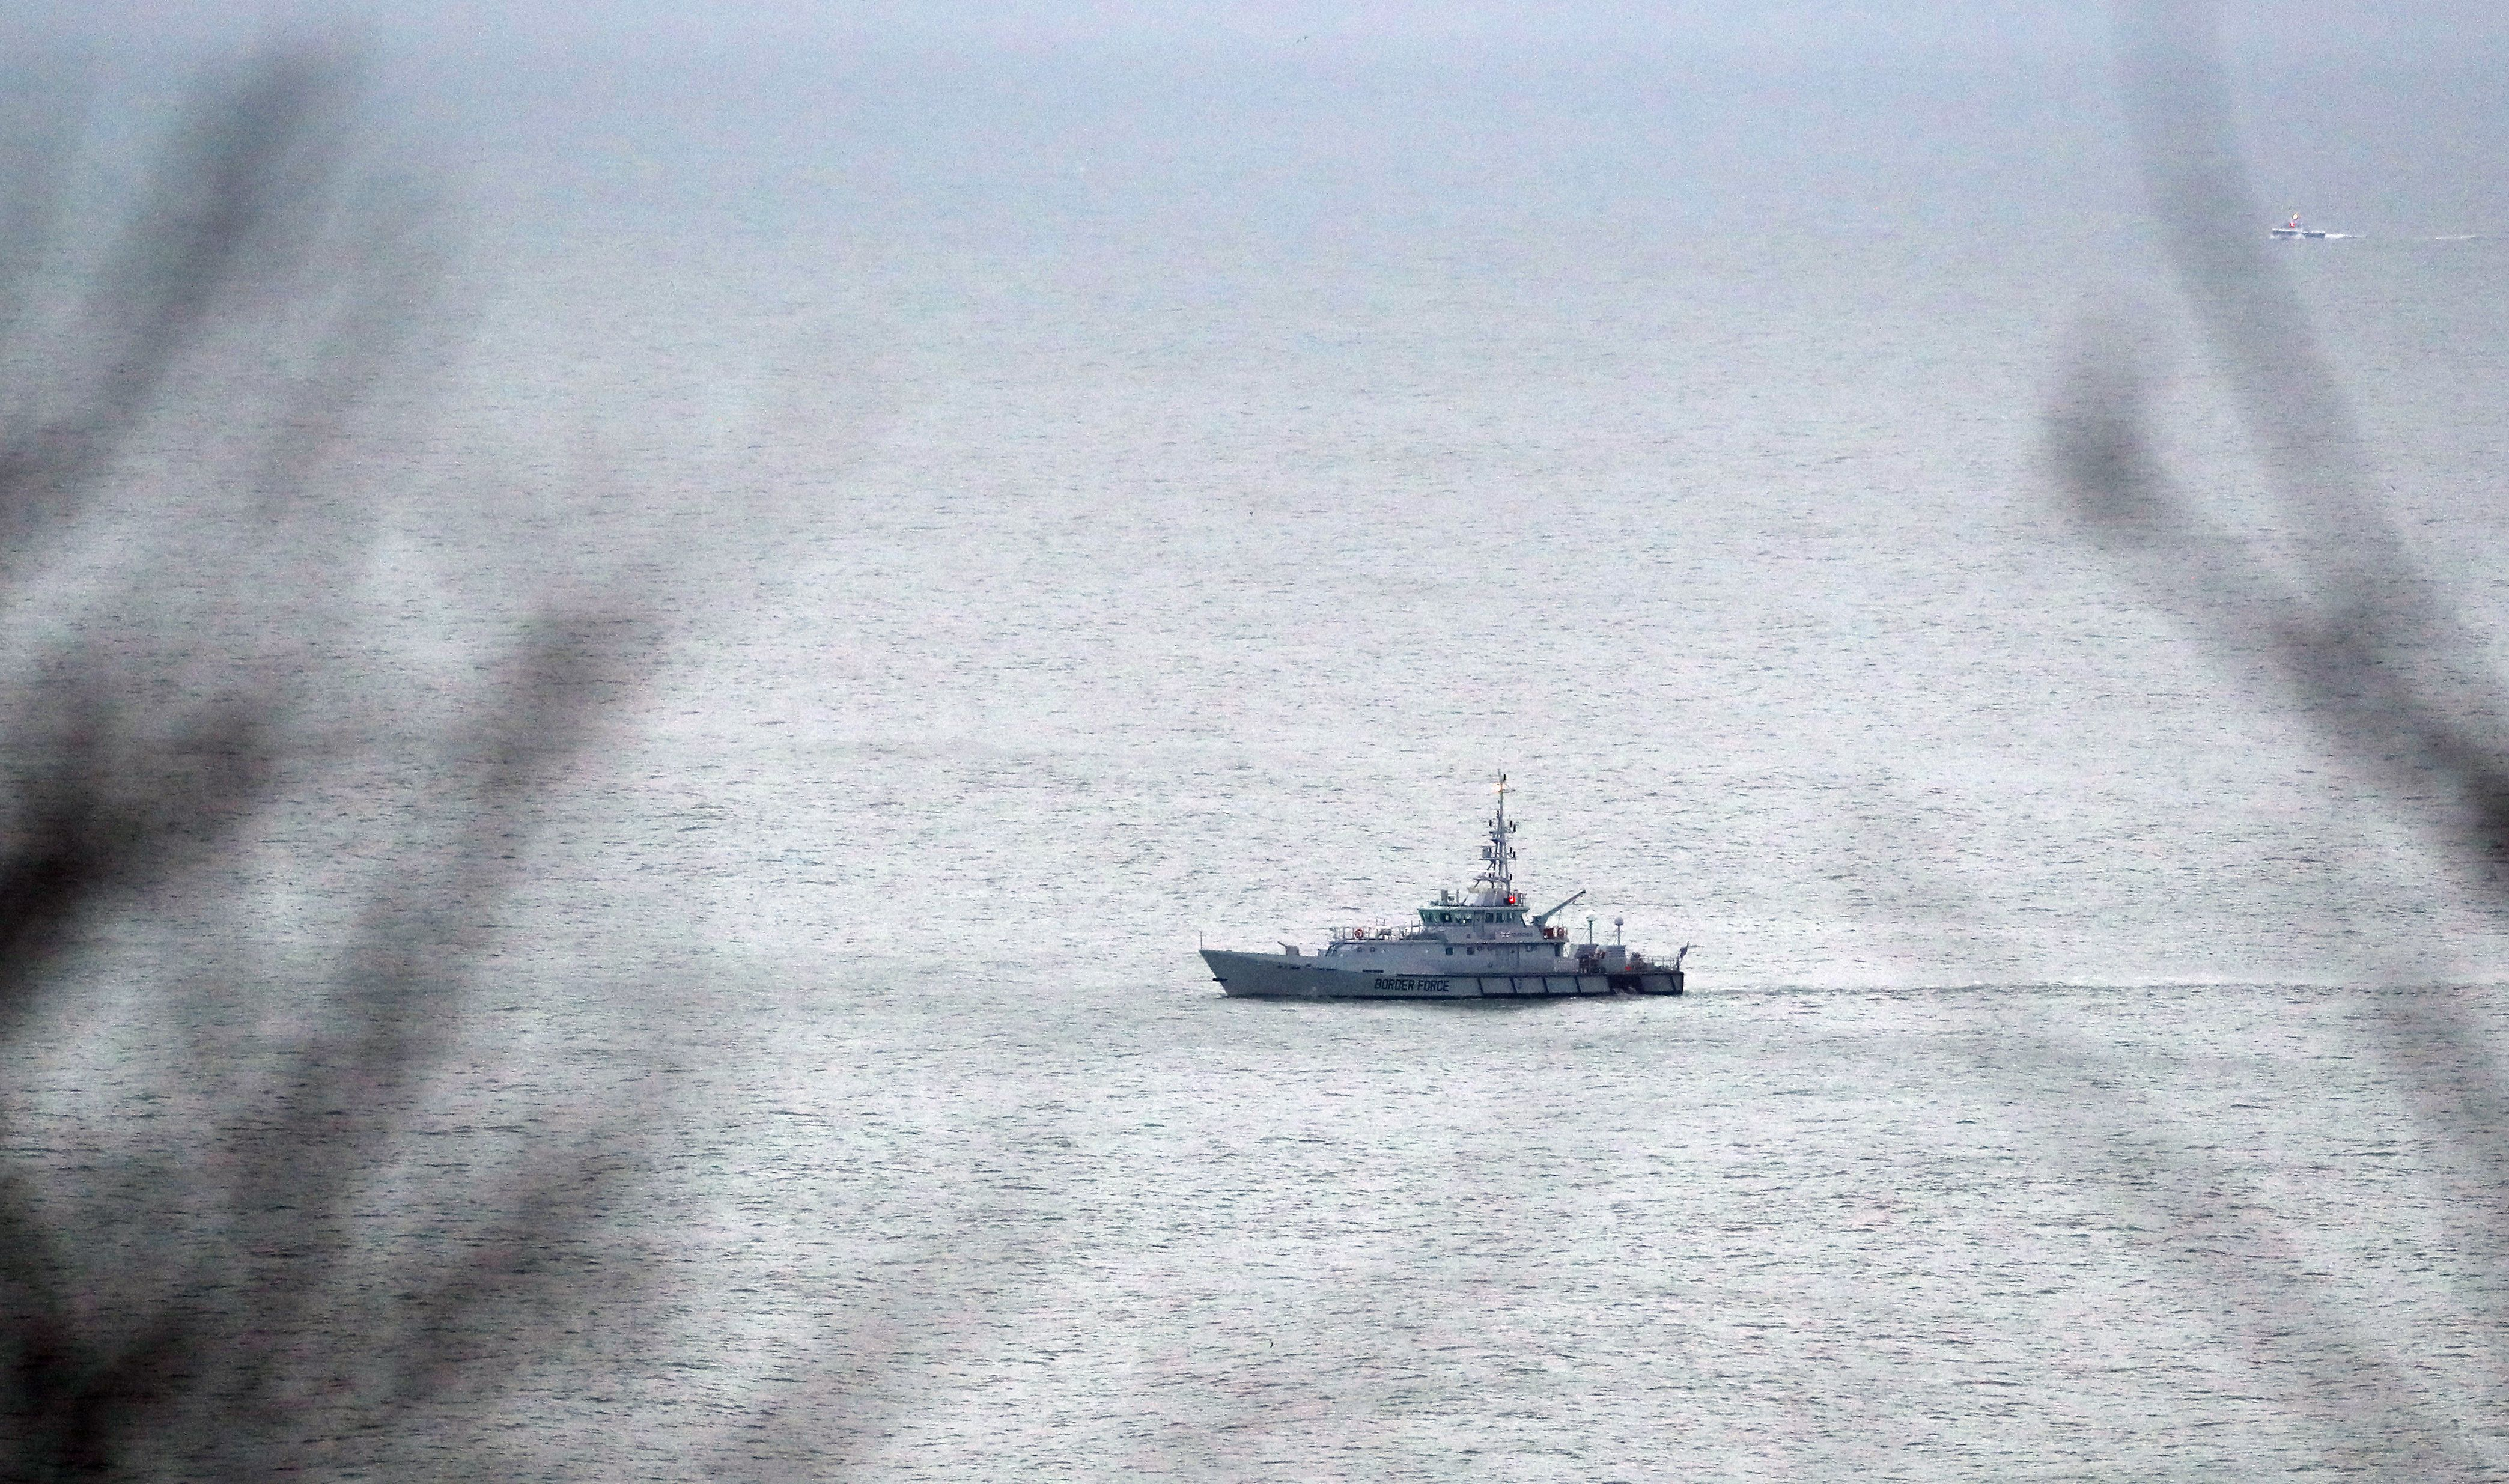 British Royal Navy deployed to prevent migrant crossings in the English Channel